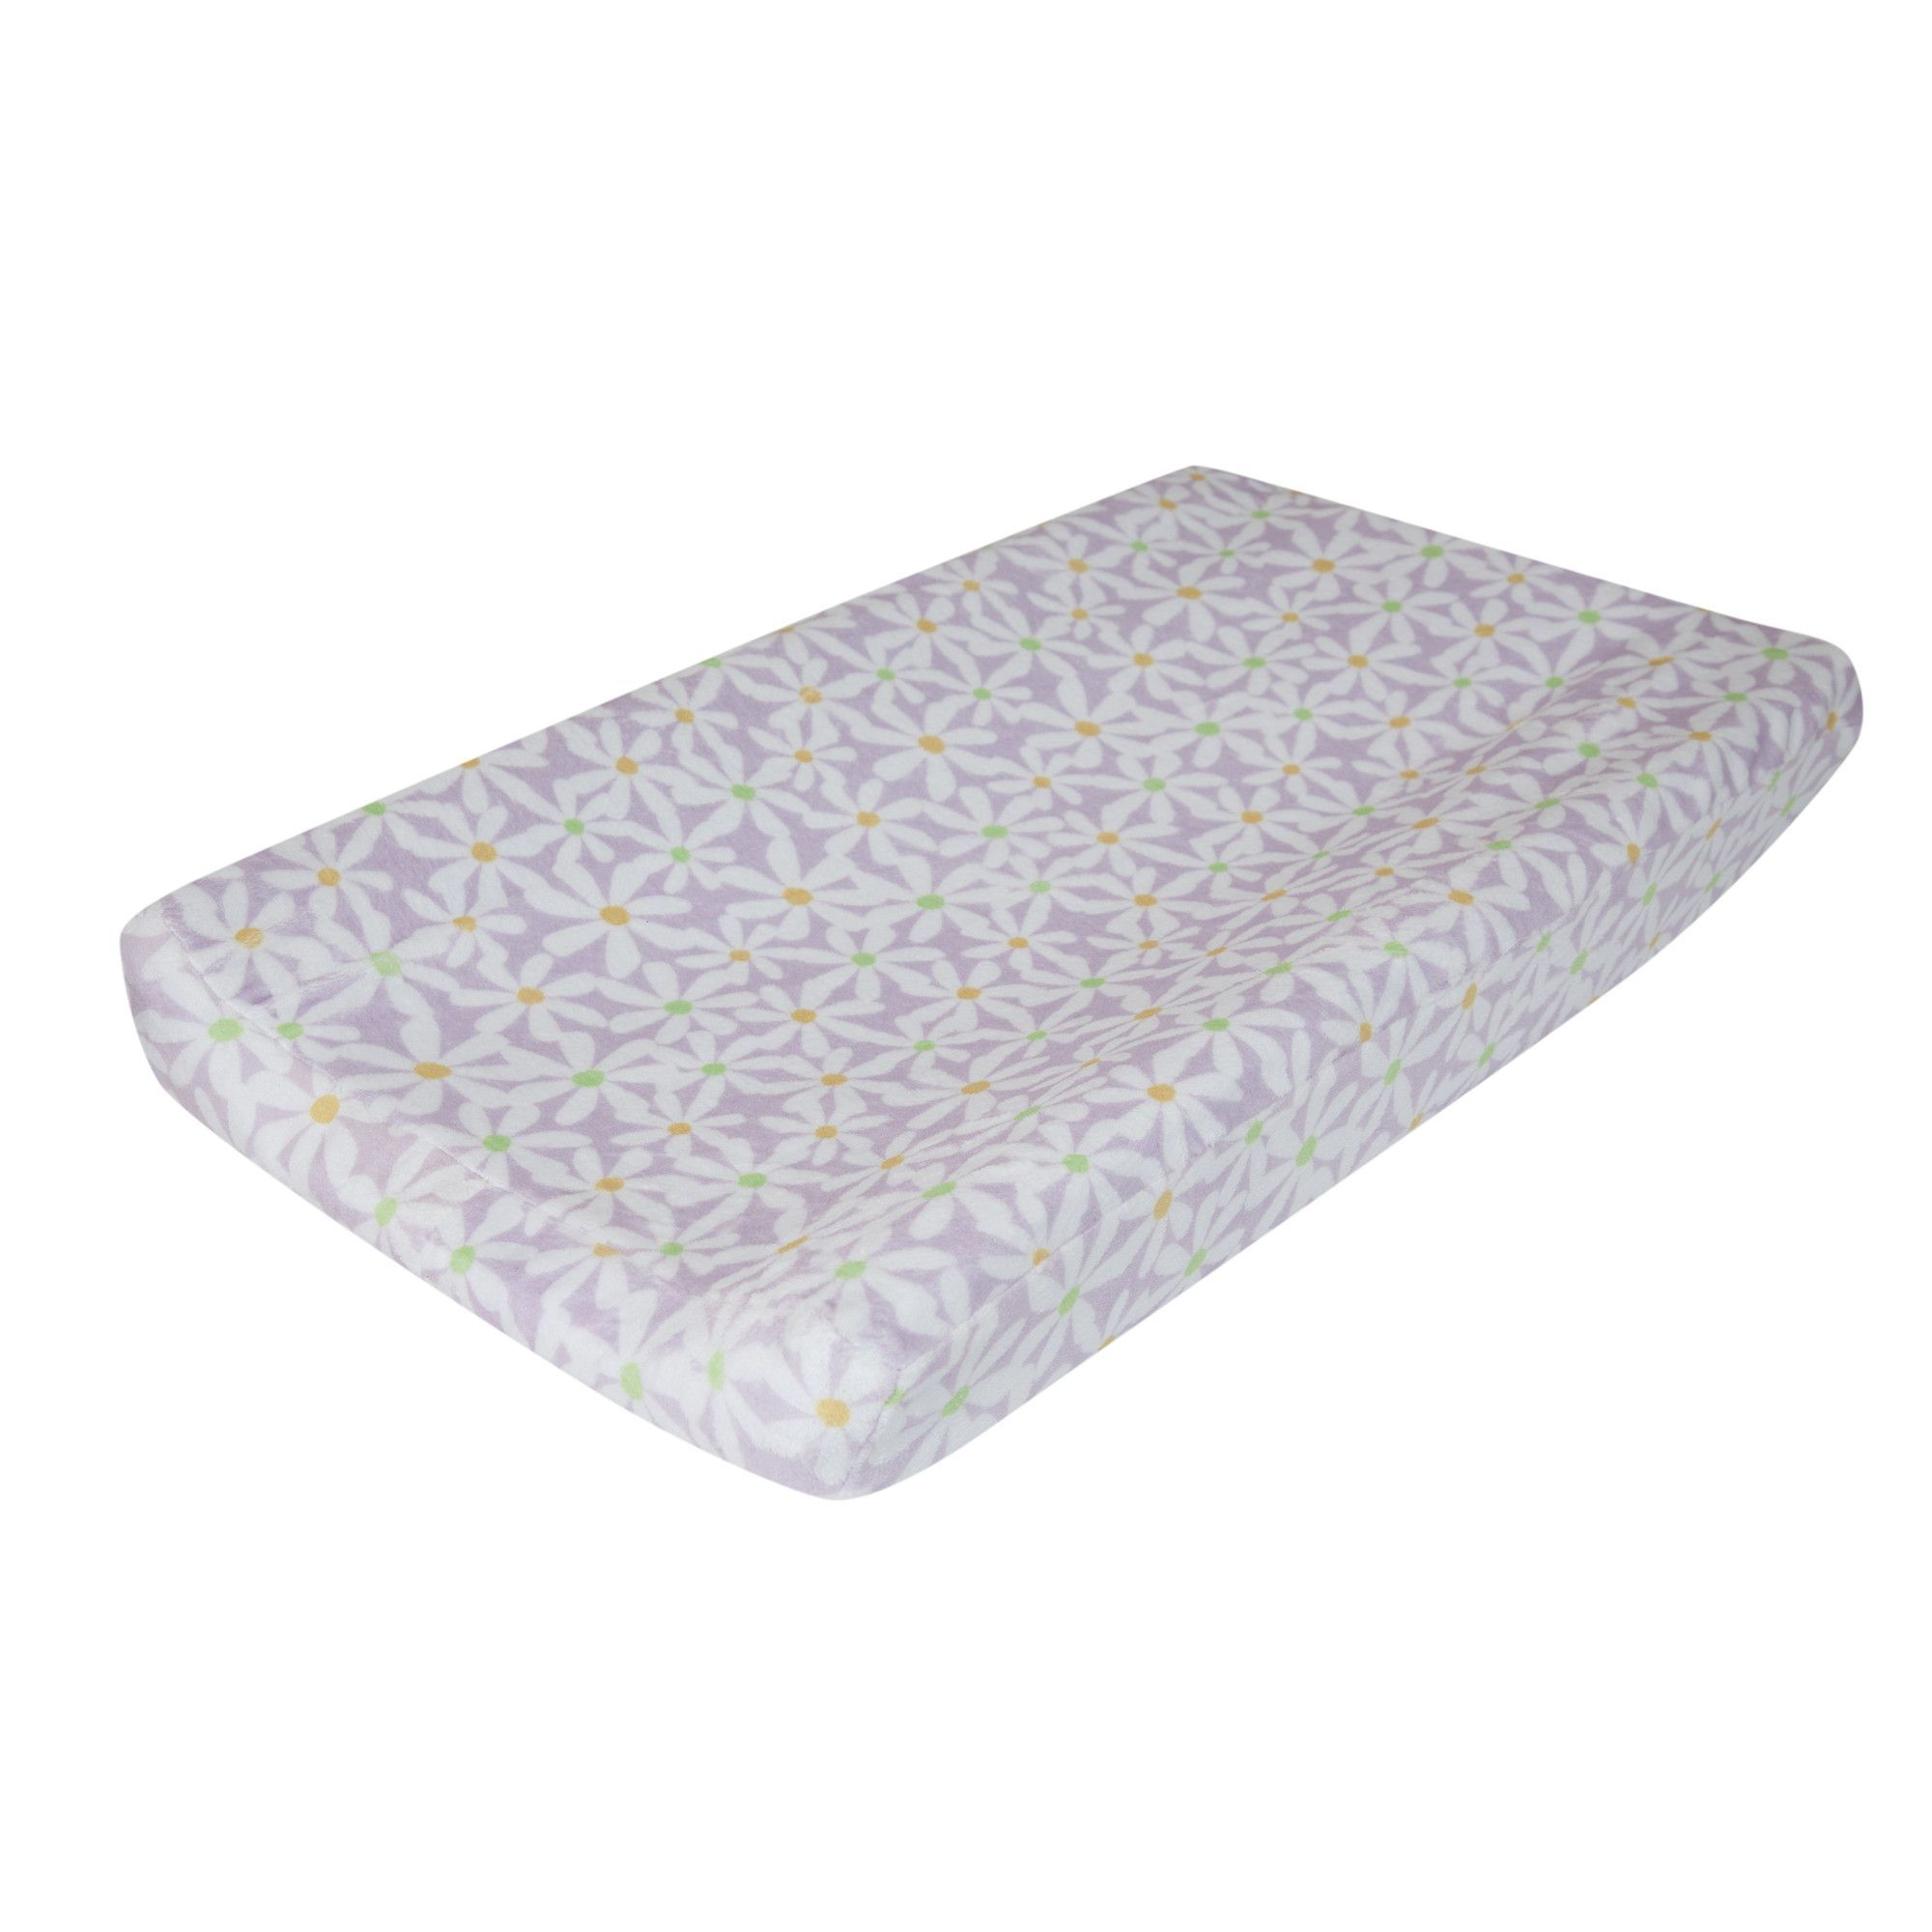 Ladybug Jungle Changing Pad Cover